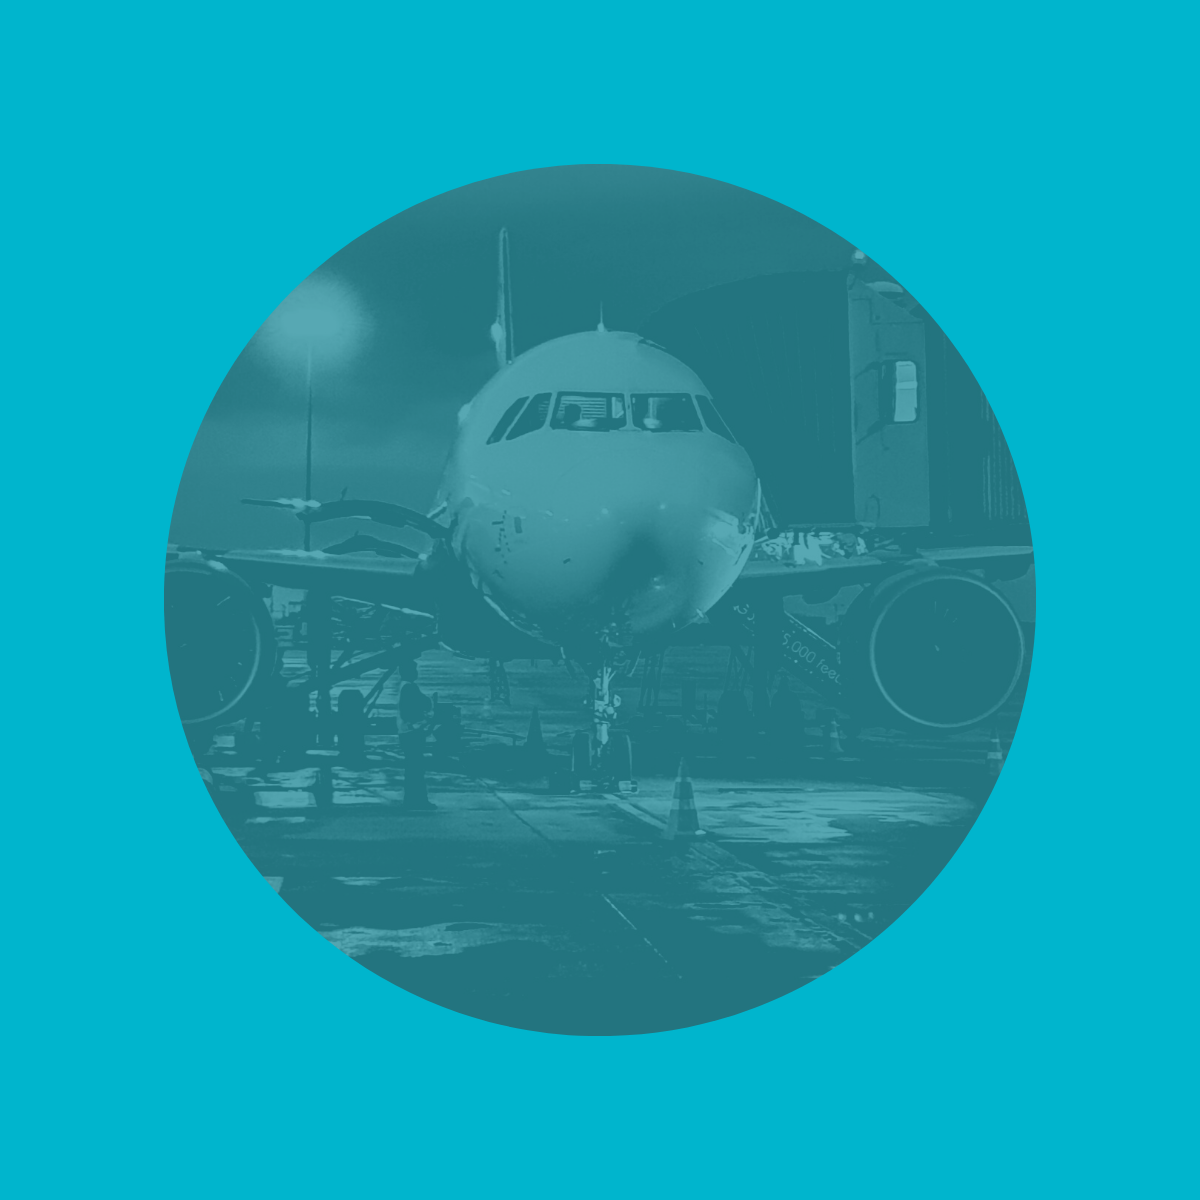 Our CEO, Dan White, spoke on the panel hosted by #rebootaviation where leading experts in data and behavioral science reviewed their research, challenges and opportunities for a sustainable future in aviation. We bring you a summary of the key themes.